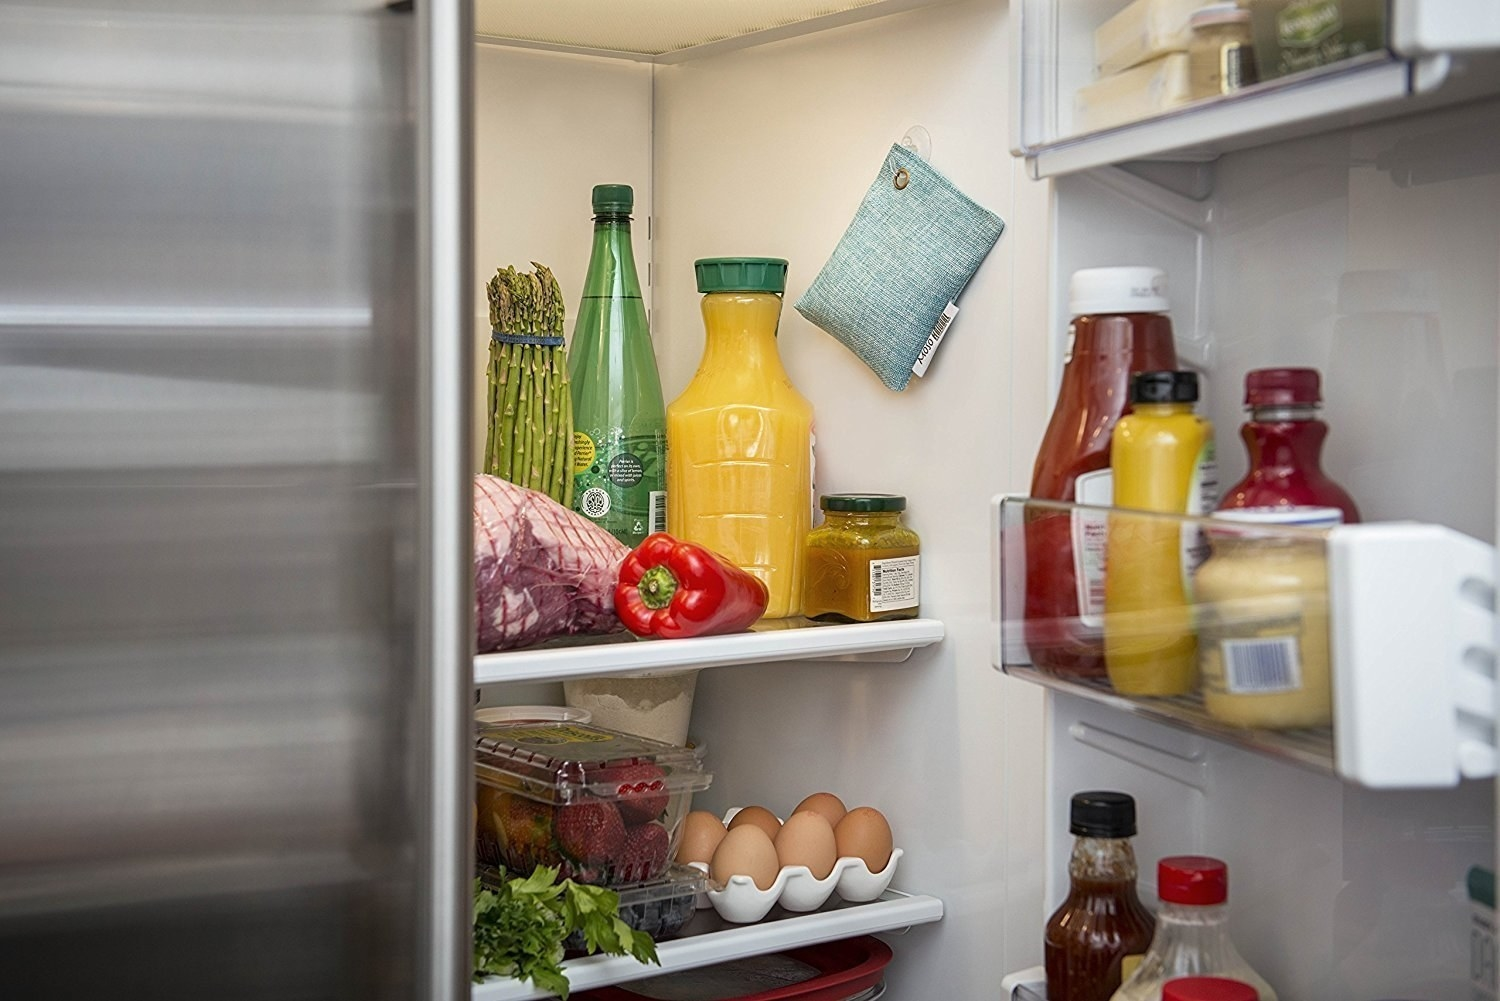 look at the inside of a fridge filled with condiments and produce with a small bag hanging on the inside wall on a stick-on hook